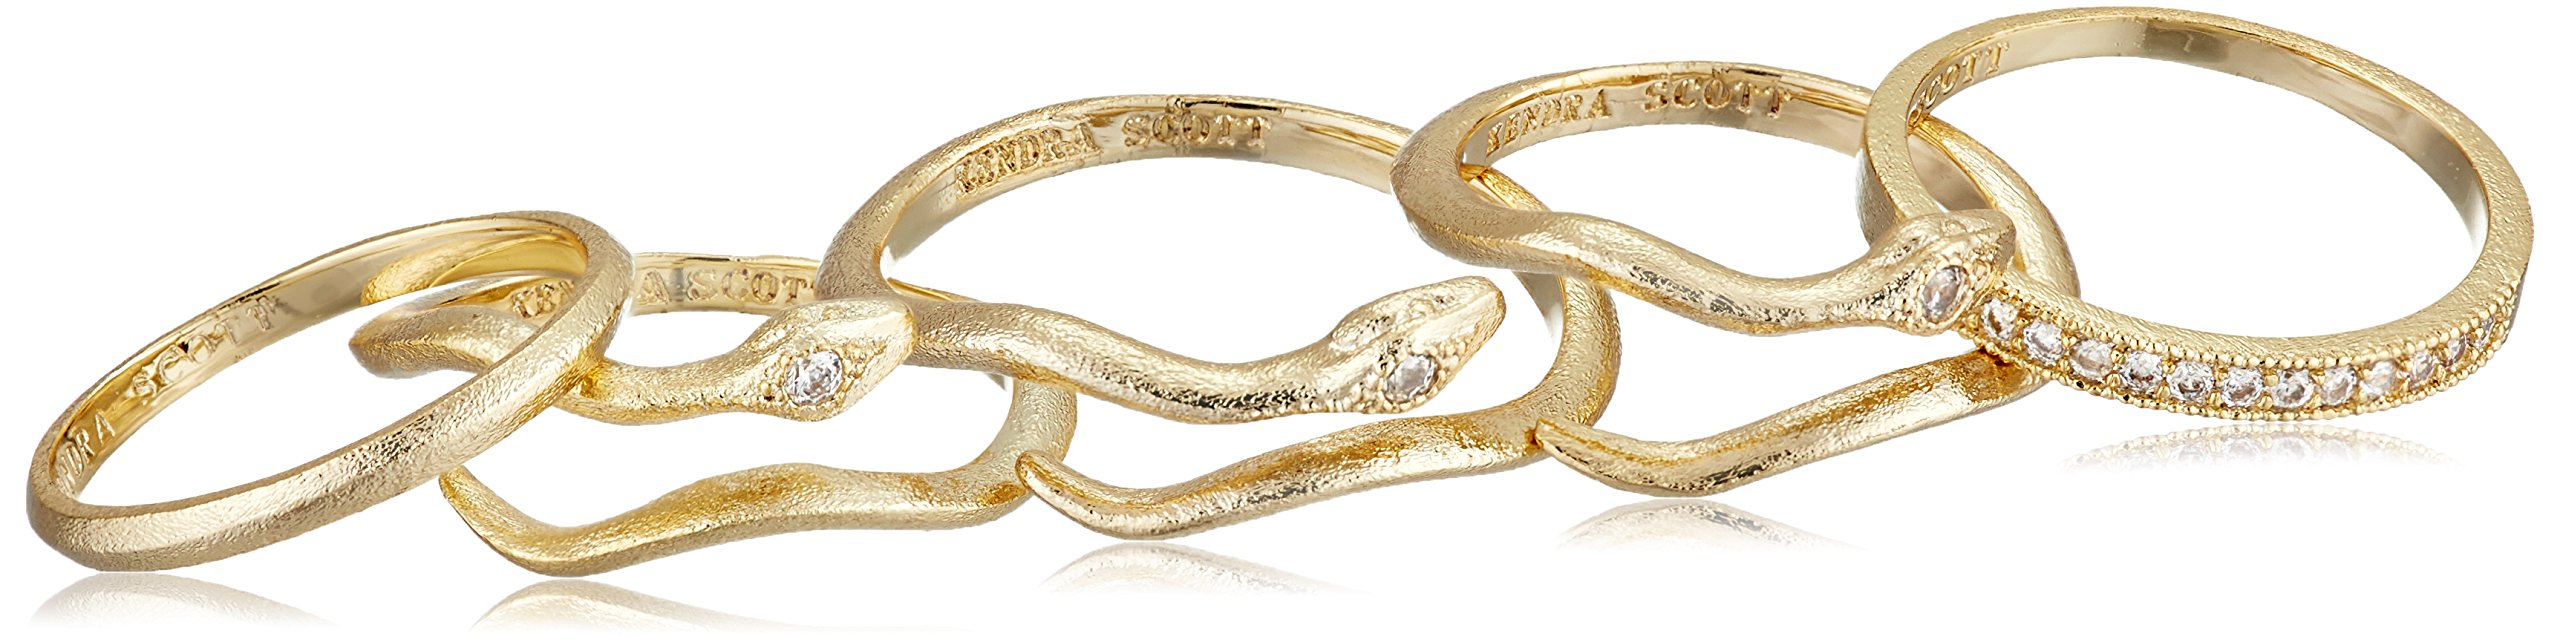 Kendra Scott Warner Gold-Plated Pave Cubic Zirconia Adjustable Midi Rings, Size 3-5